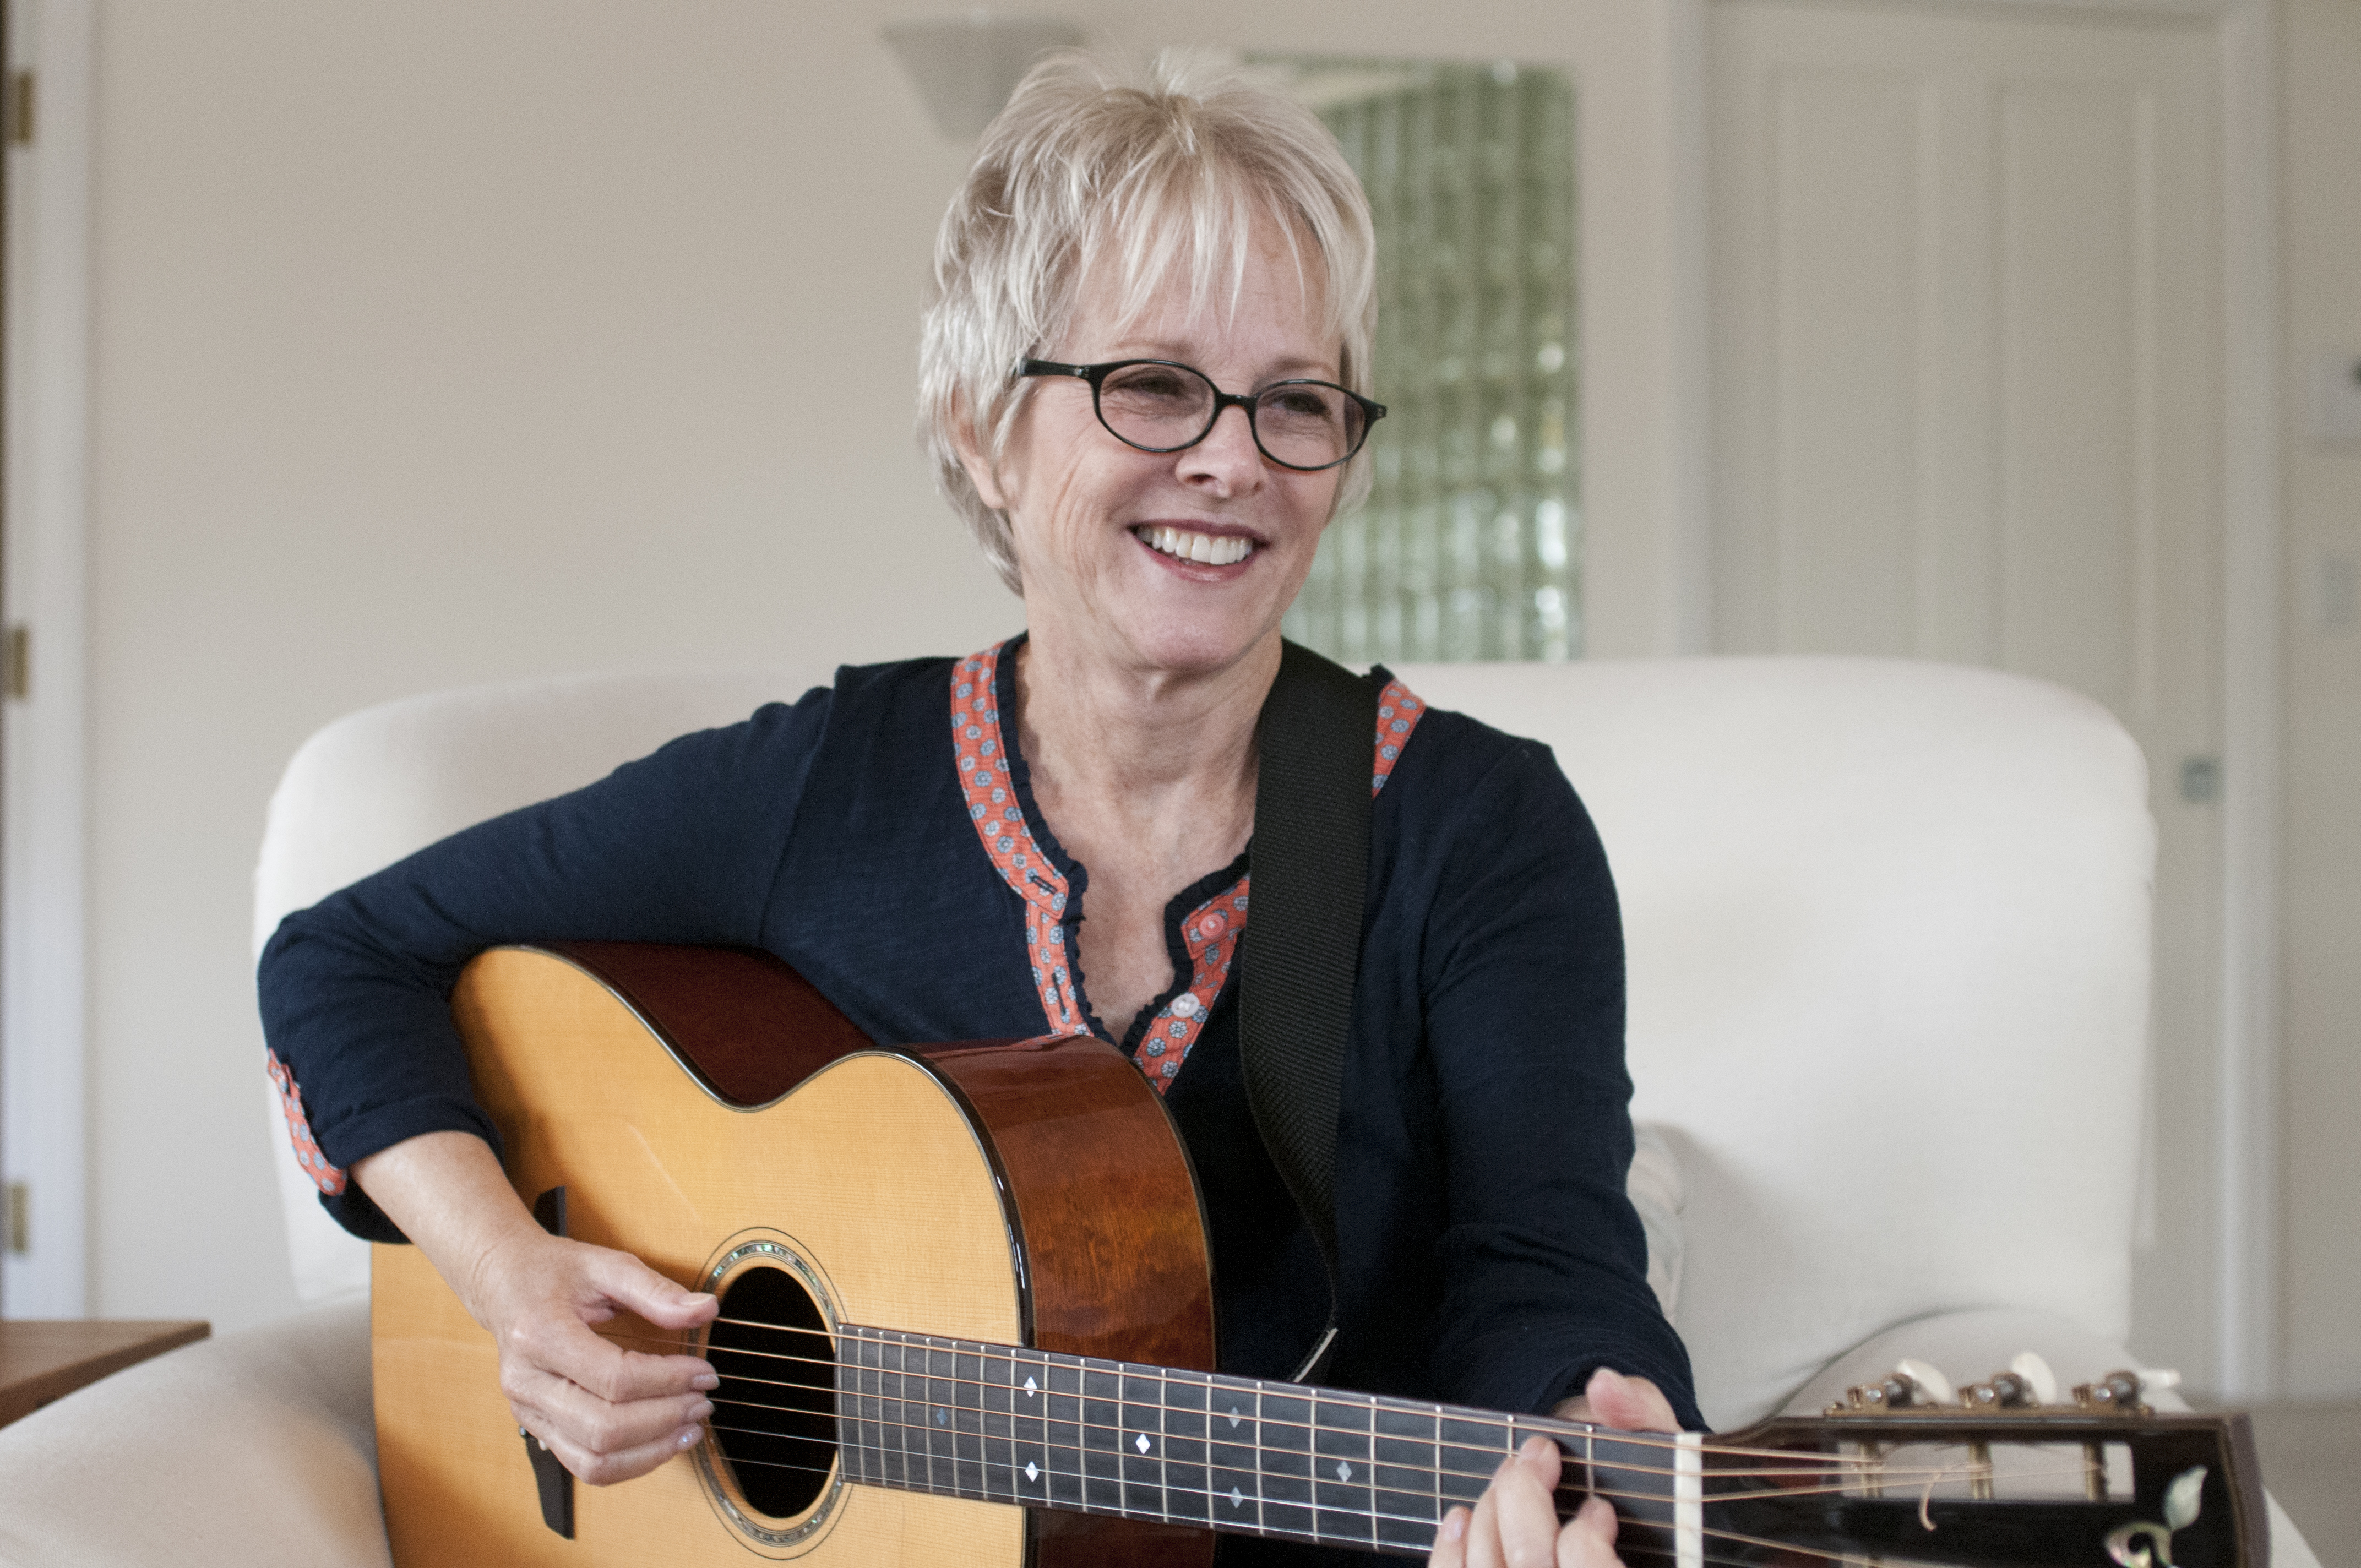 tracy-newman-smiling-to-the-side-with-guitar